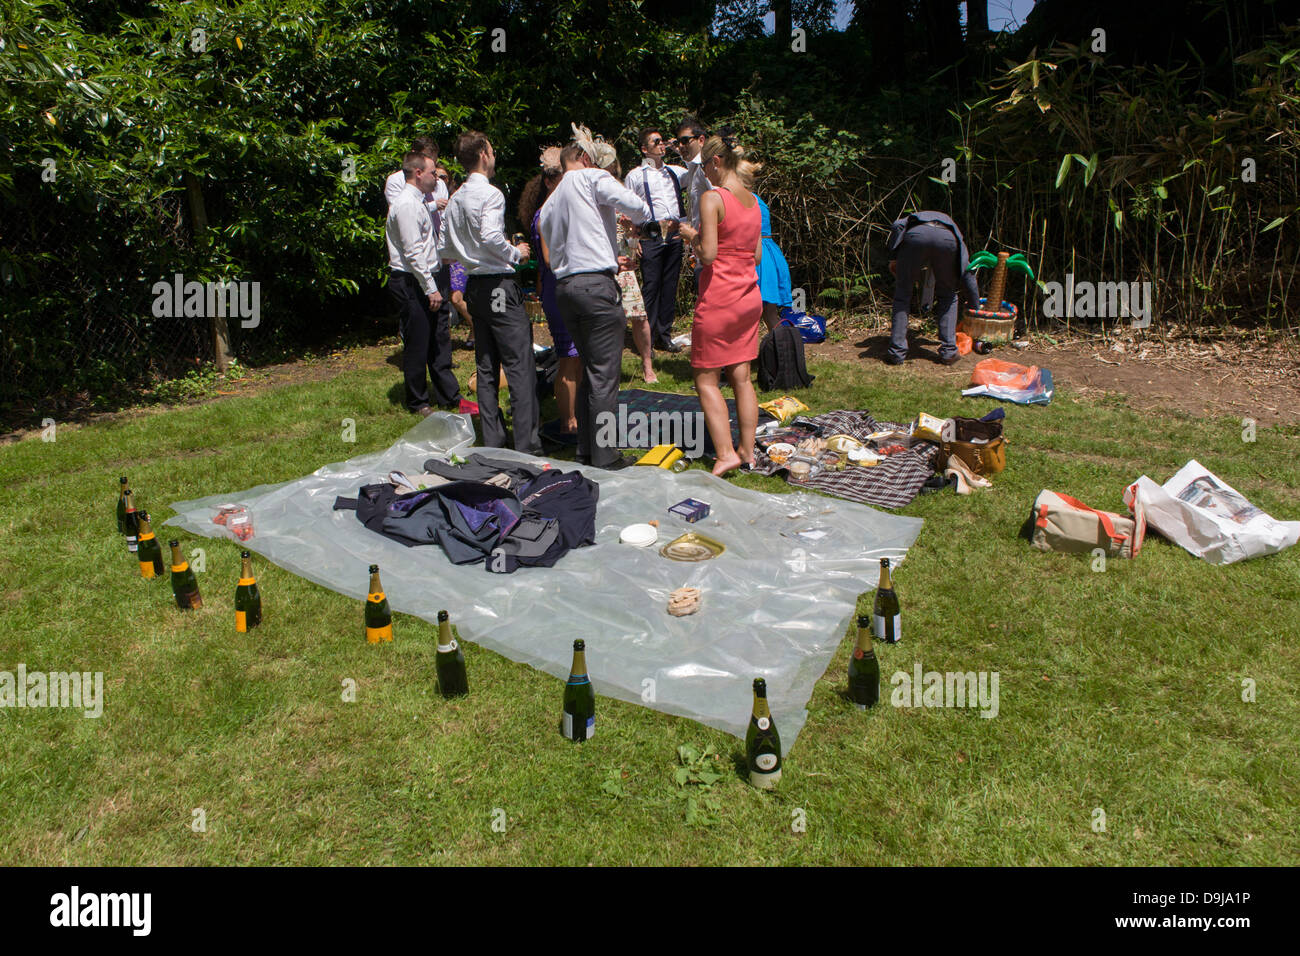 Wealthy punters with bottles of empty Champagne laid out enjoy a morning car park party on grass, hours before the - Stock Image